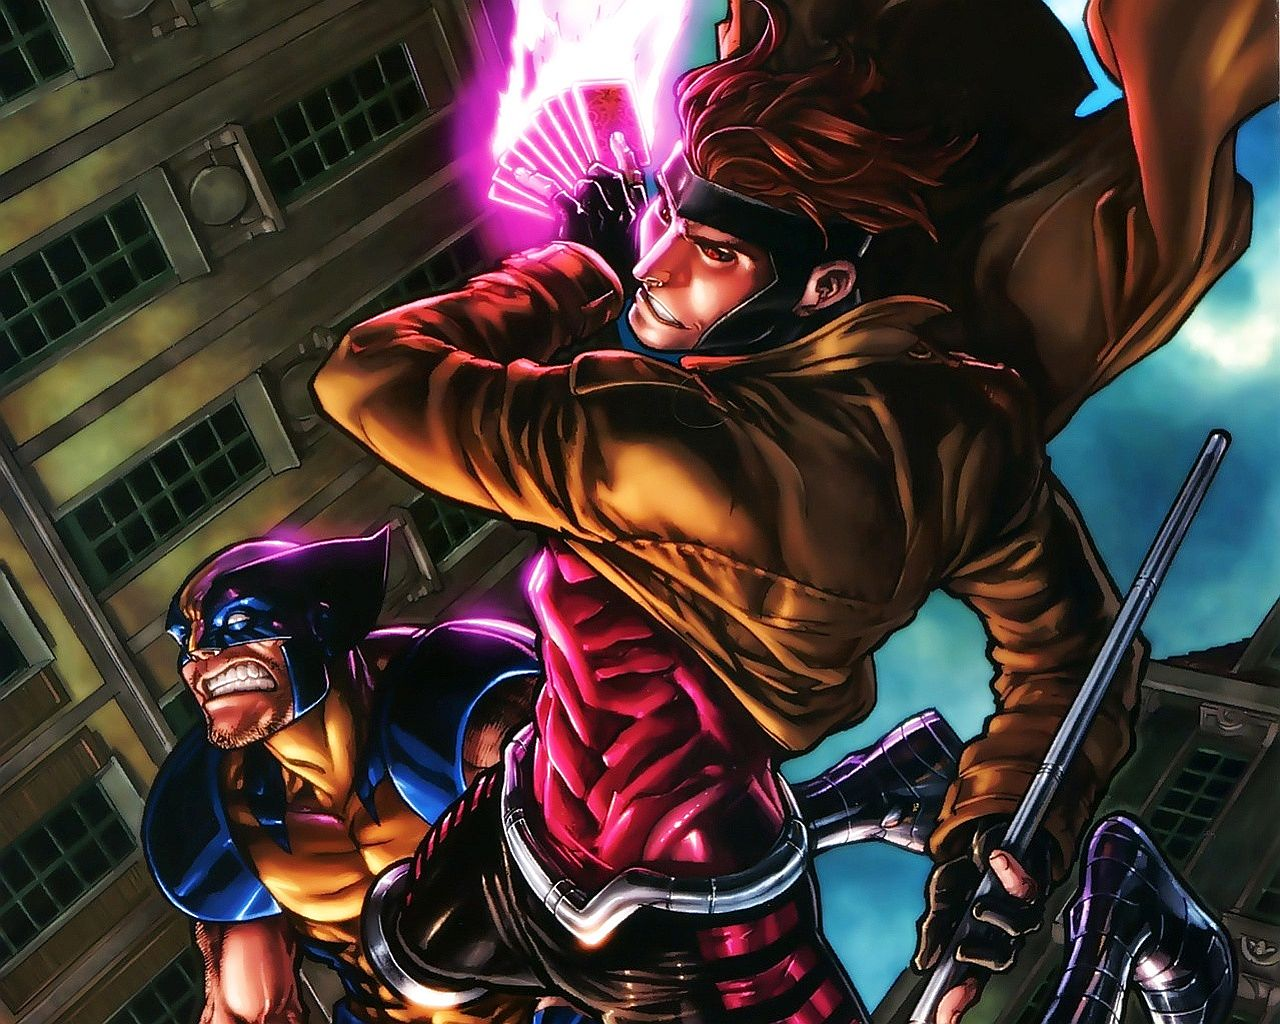 'Gambit' Solo Movie Confirmed With Channing Tatum Attached